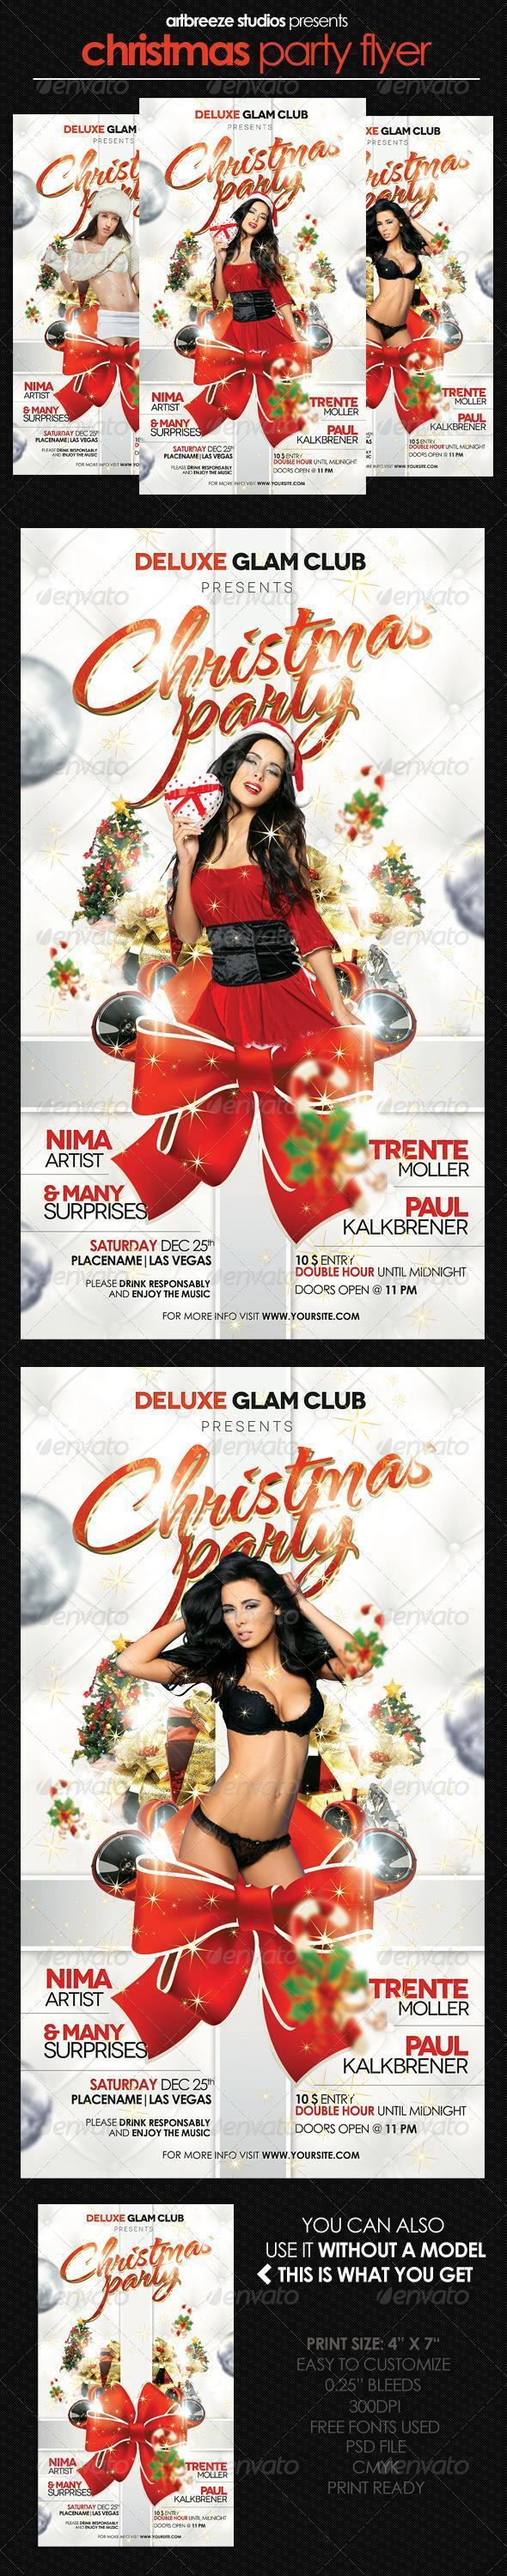 Christmas Party Girls Glam Club Flyer Template